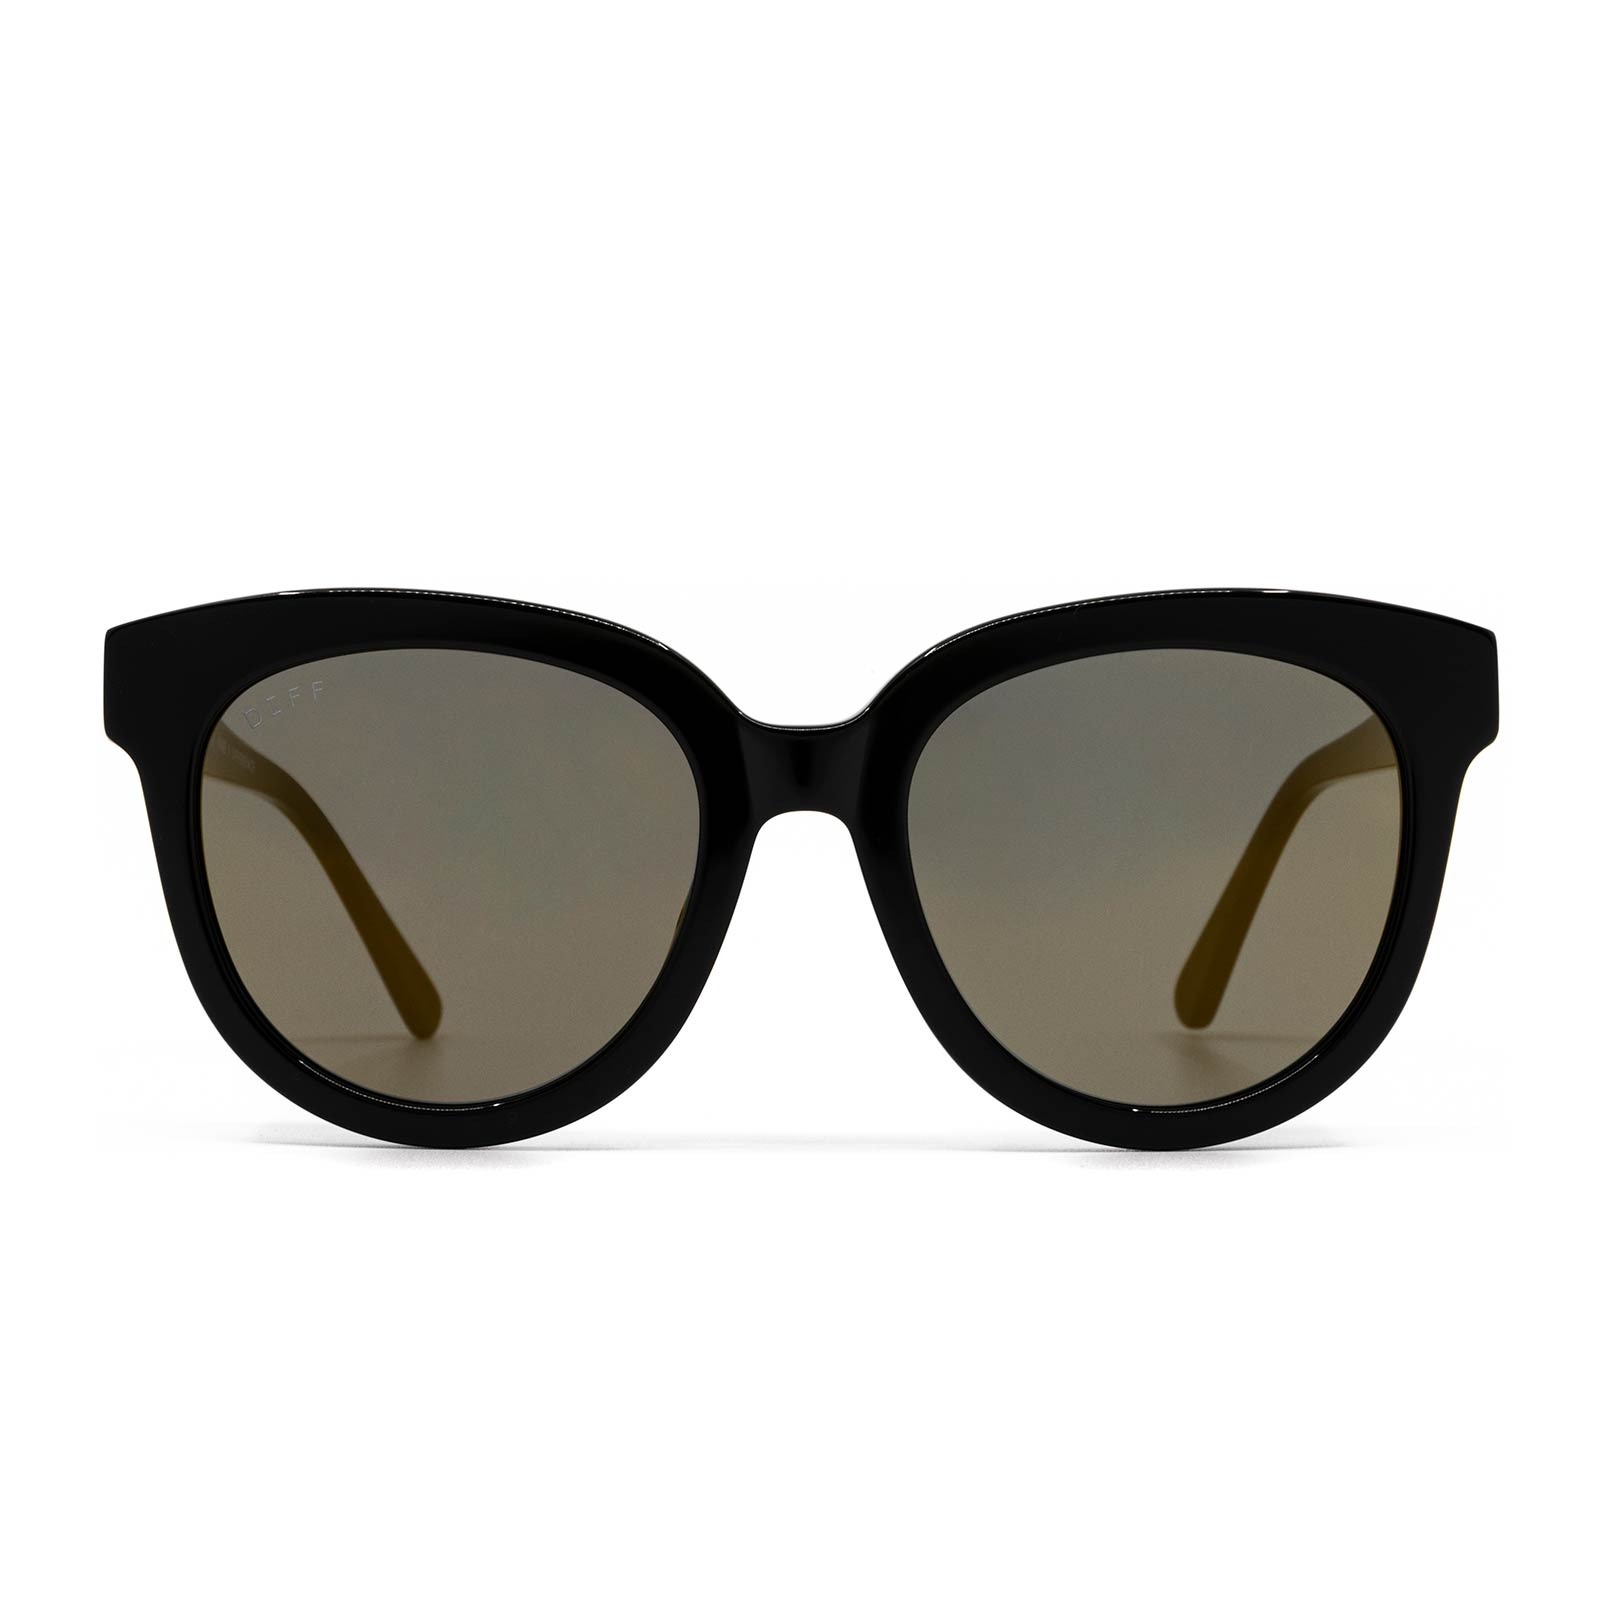 April sunglasses with black frame and gold mirror lens- front view